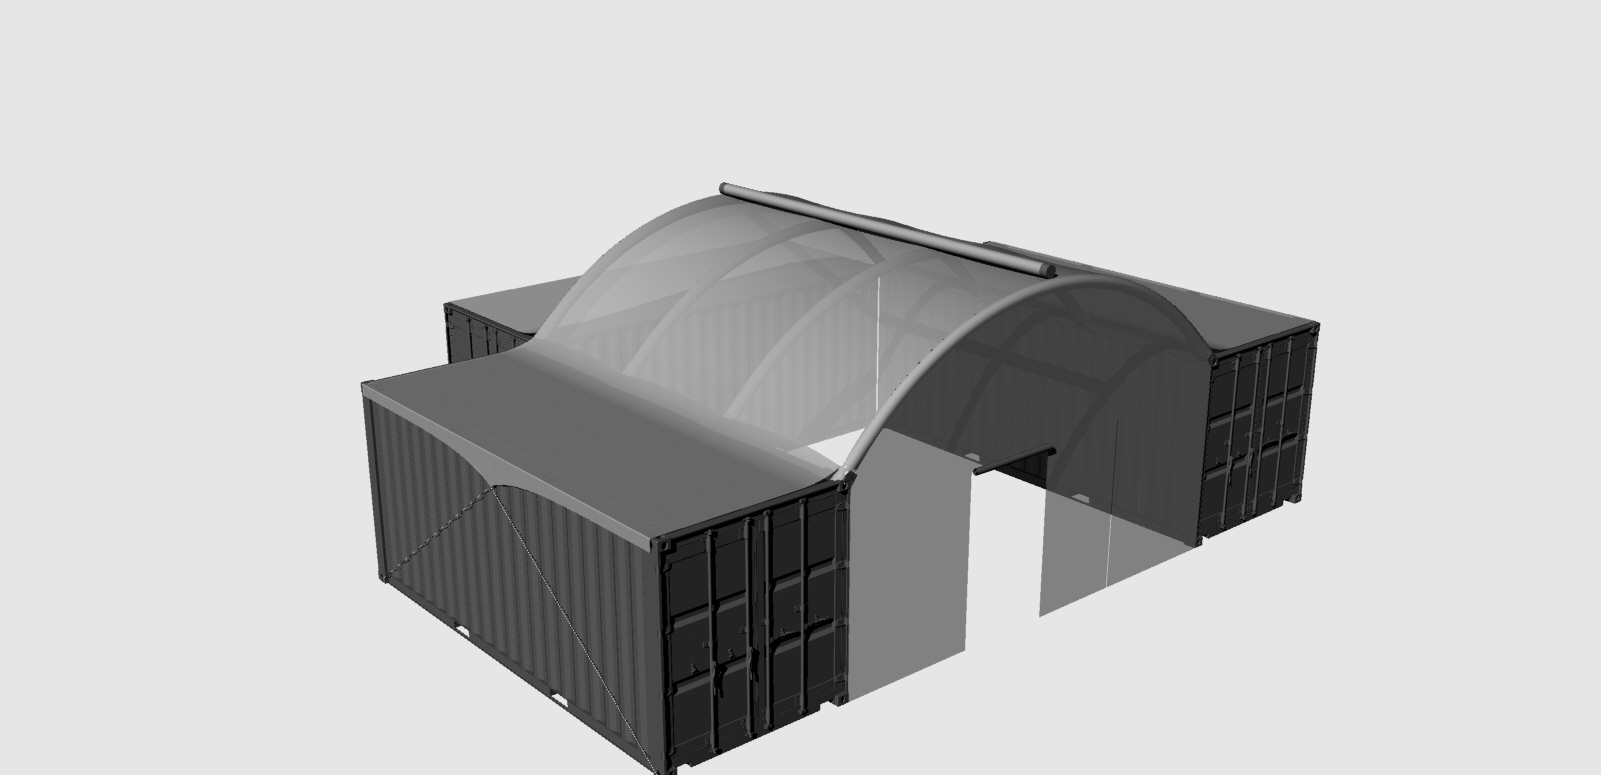 Container Building with Inflatable Roof - Inside view